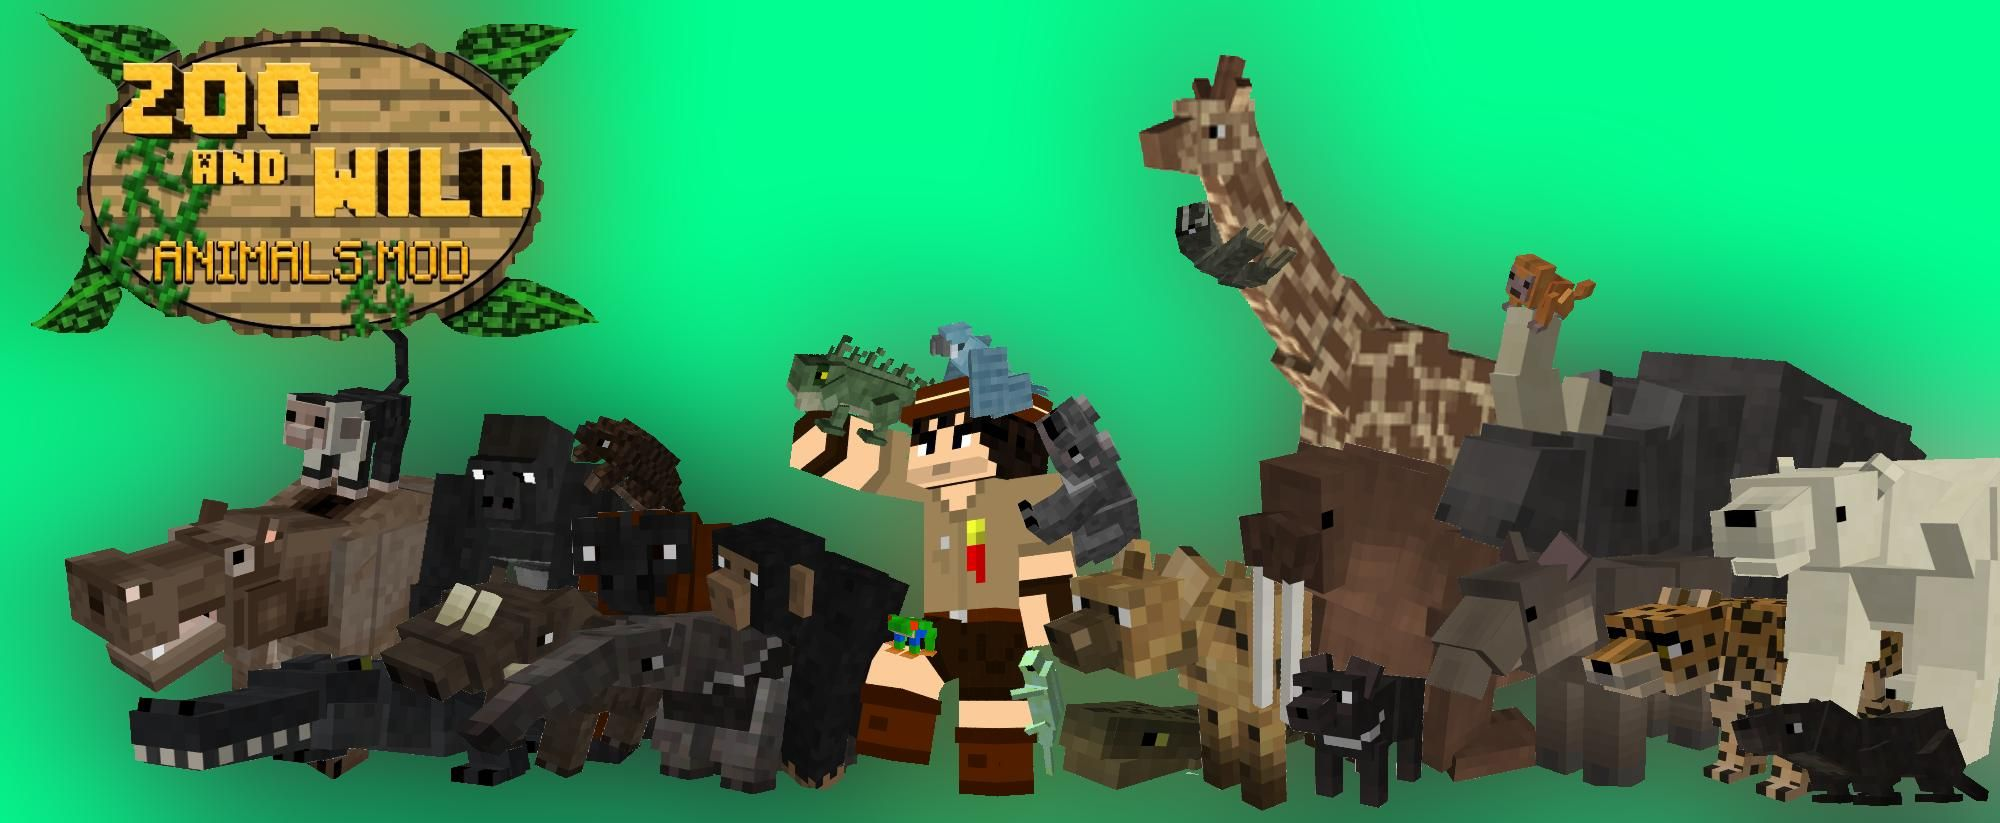 Dead Download The Models And Use Them If You Want Realisticlivestock Mod Wip Mods Minecraft Mods Mapping And Modding Ja Minecraft Mods Minecraft Mod